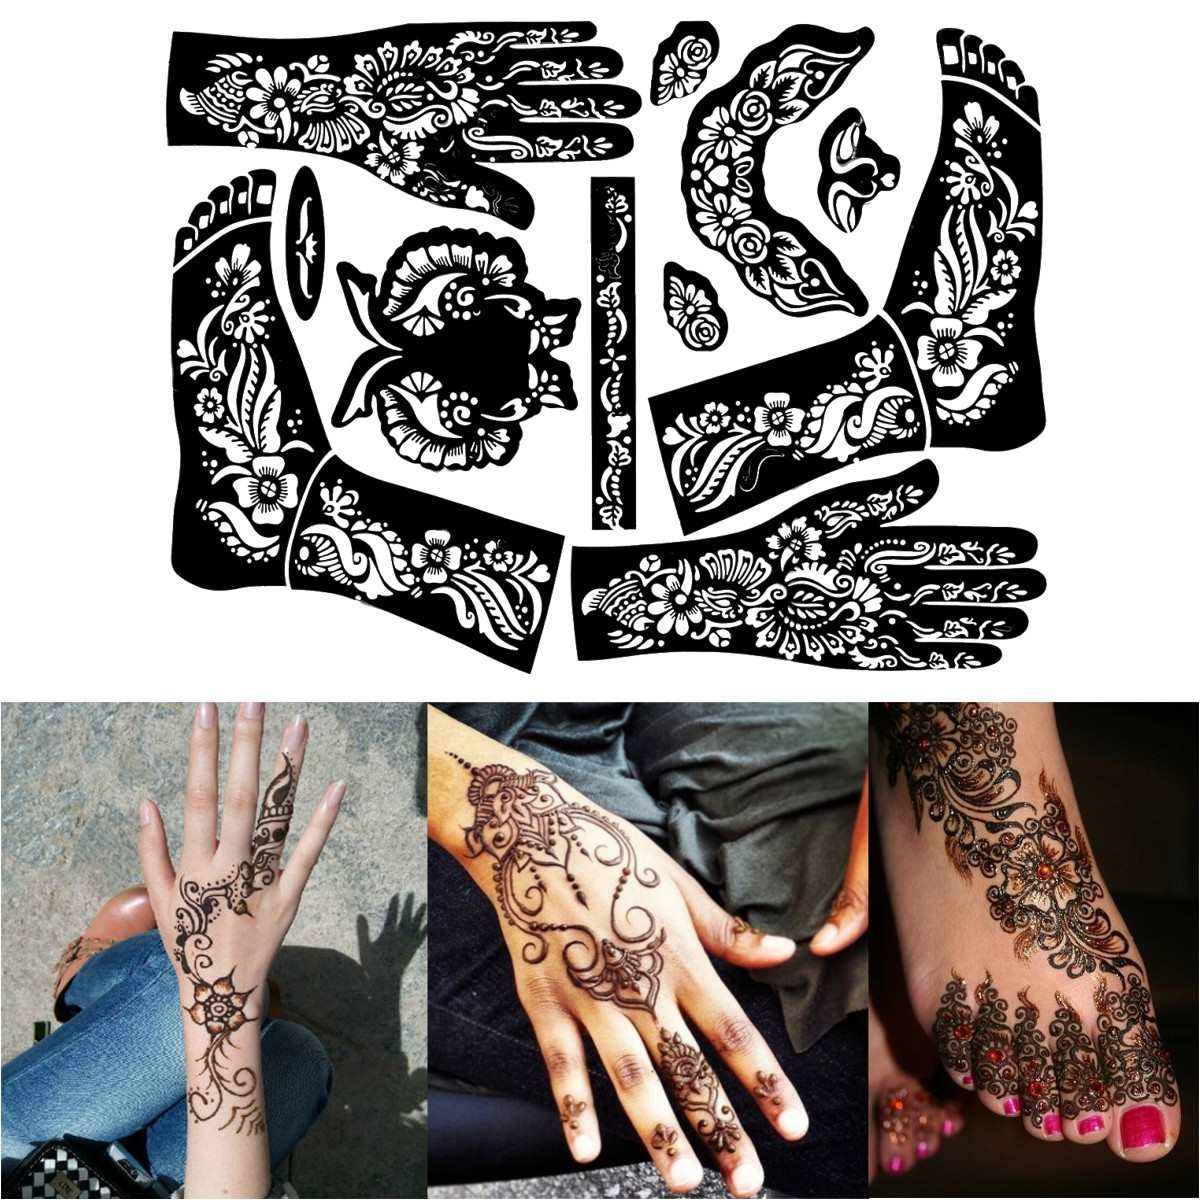 1 Sheet Henna Tattoo Templates Hands Feet Leg Arm Airbrushing Tattooing Templates Professional Temporary Mehndi Body Painting